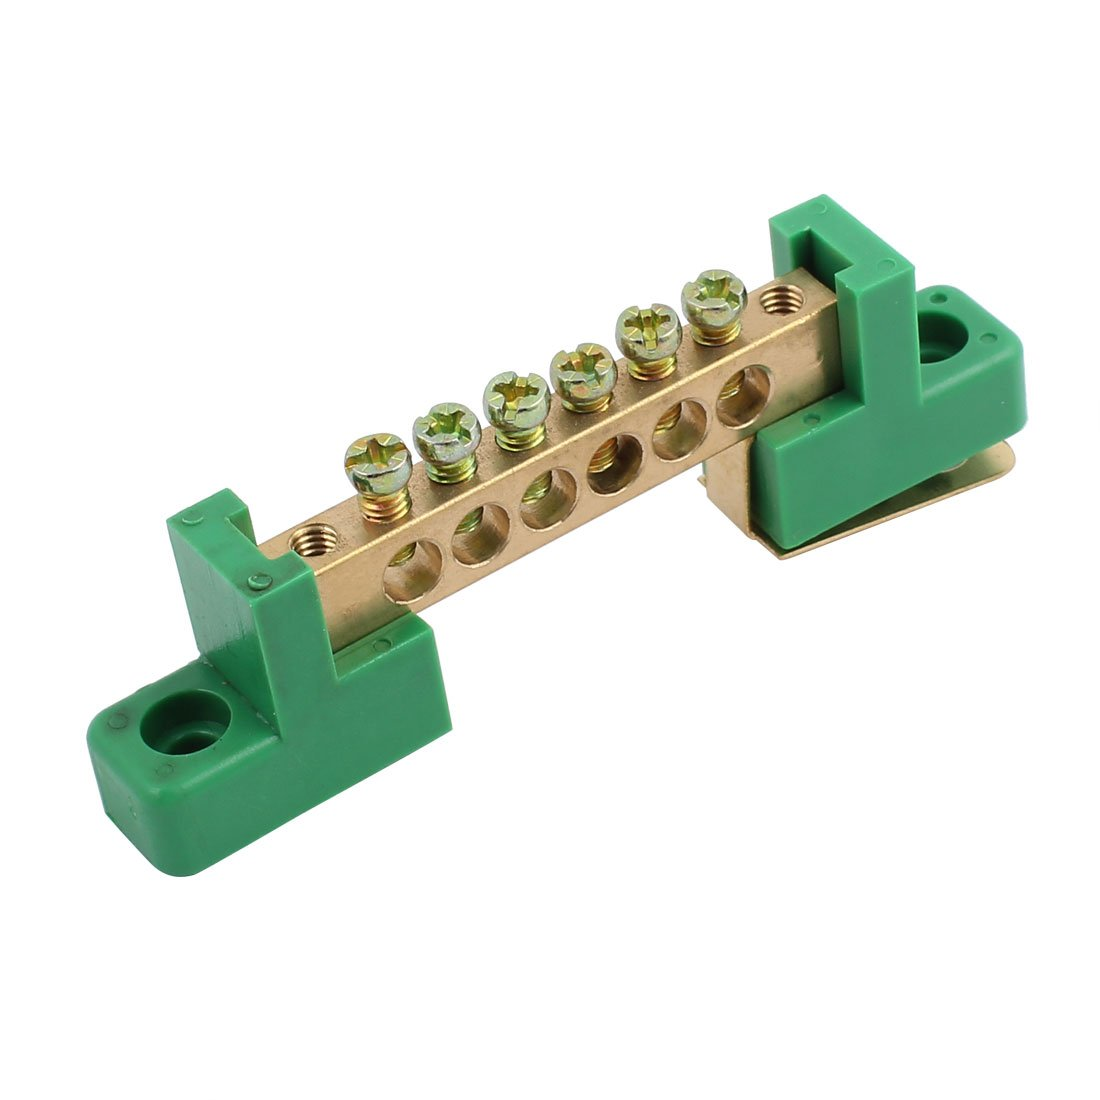 Aexit XP0609D Wire Connection Screw Terminal Strip Copper Terminal 6 Positions Green